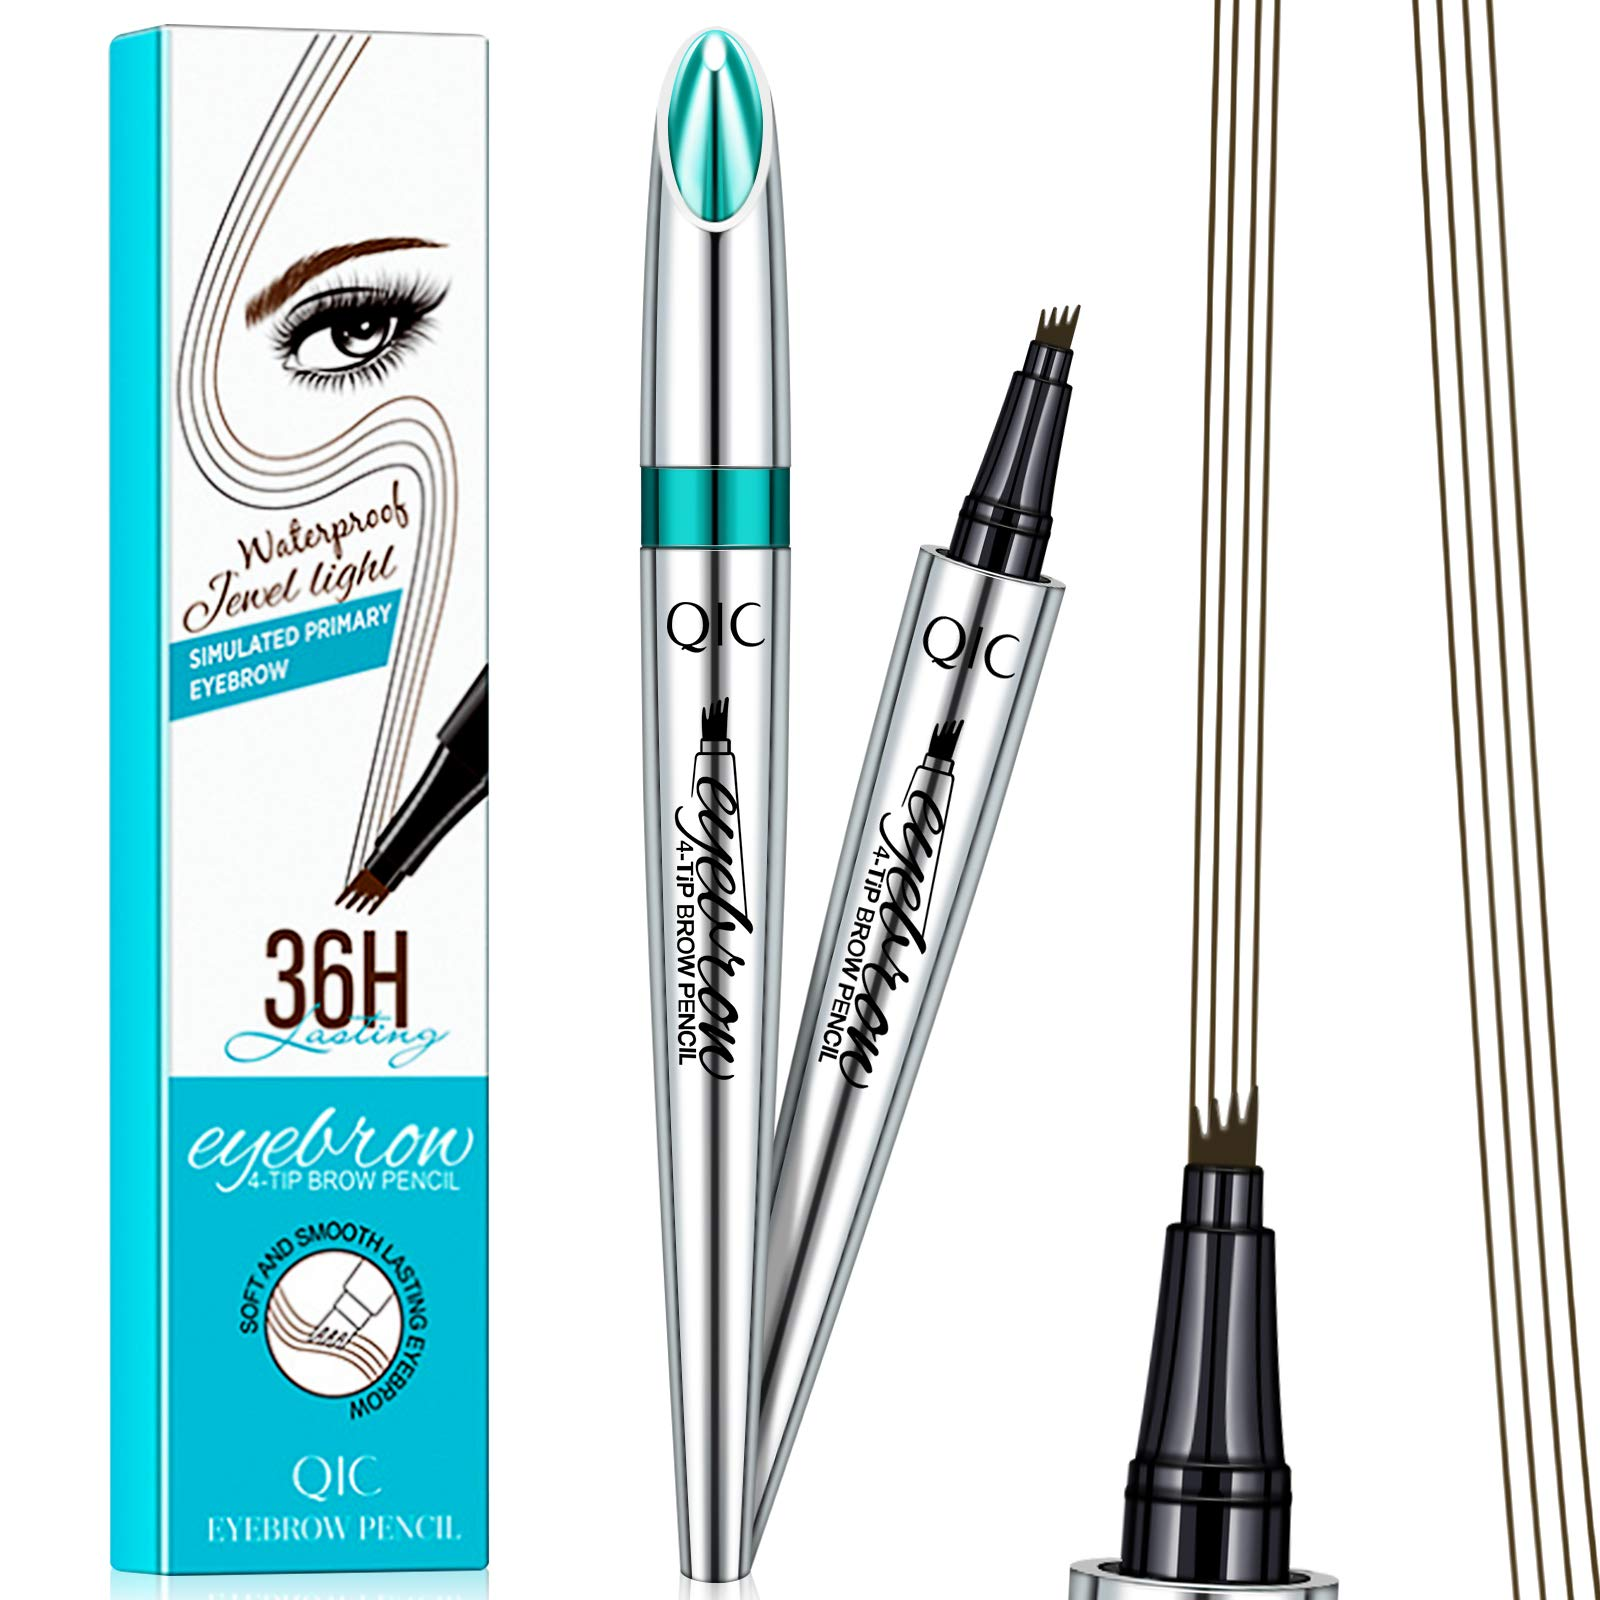 36Hours Super Long Lasting Eyebrow Tattoo Pen - Microblading Liquid Eyebrow Pencil Brow Pen with 4 Micro-Fork Tips to Applicator, Waterproof, Smudge-Proof, All Day Charming Eye Brows Look (Dark-Brown)